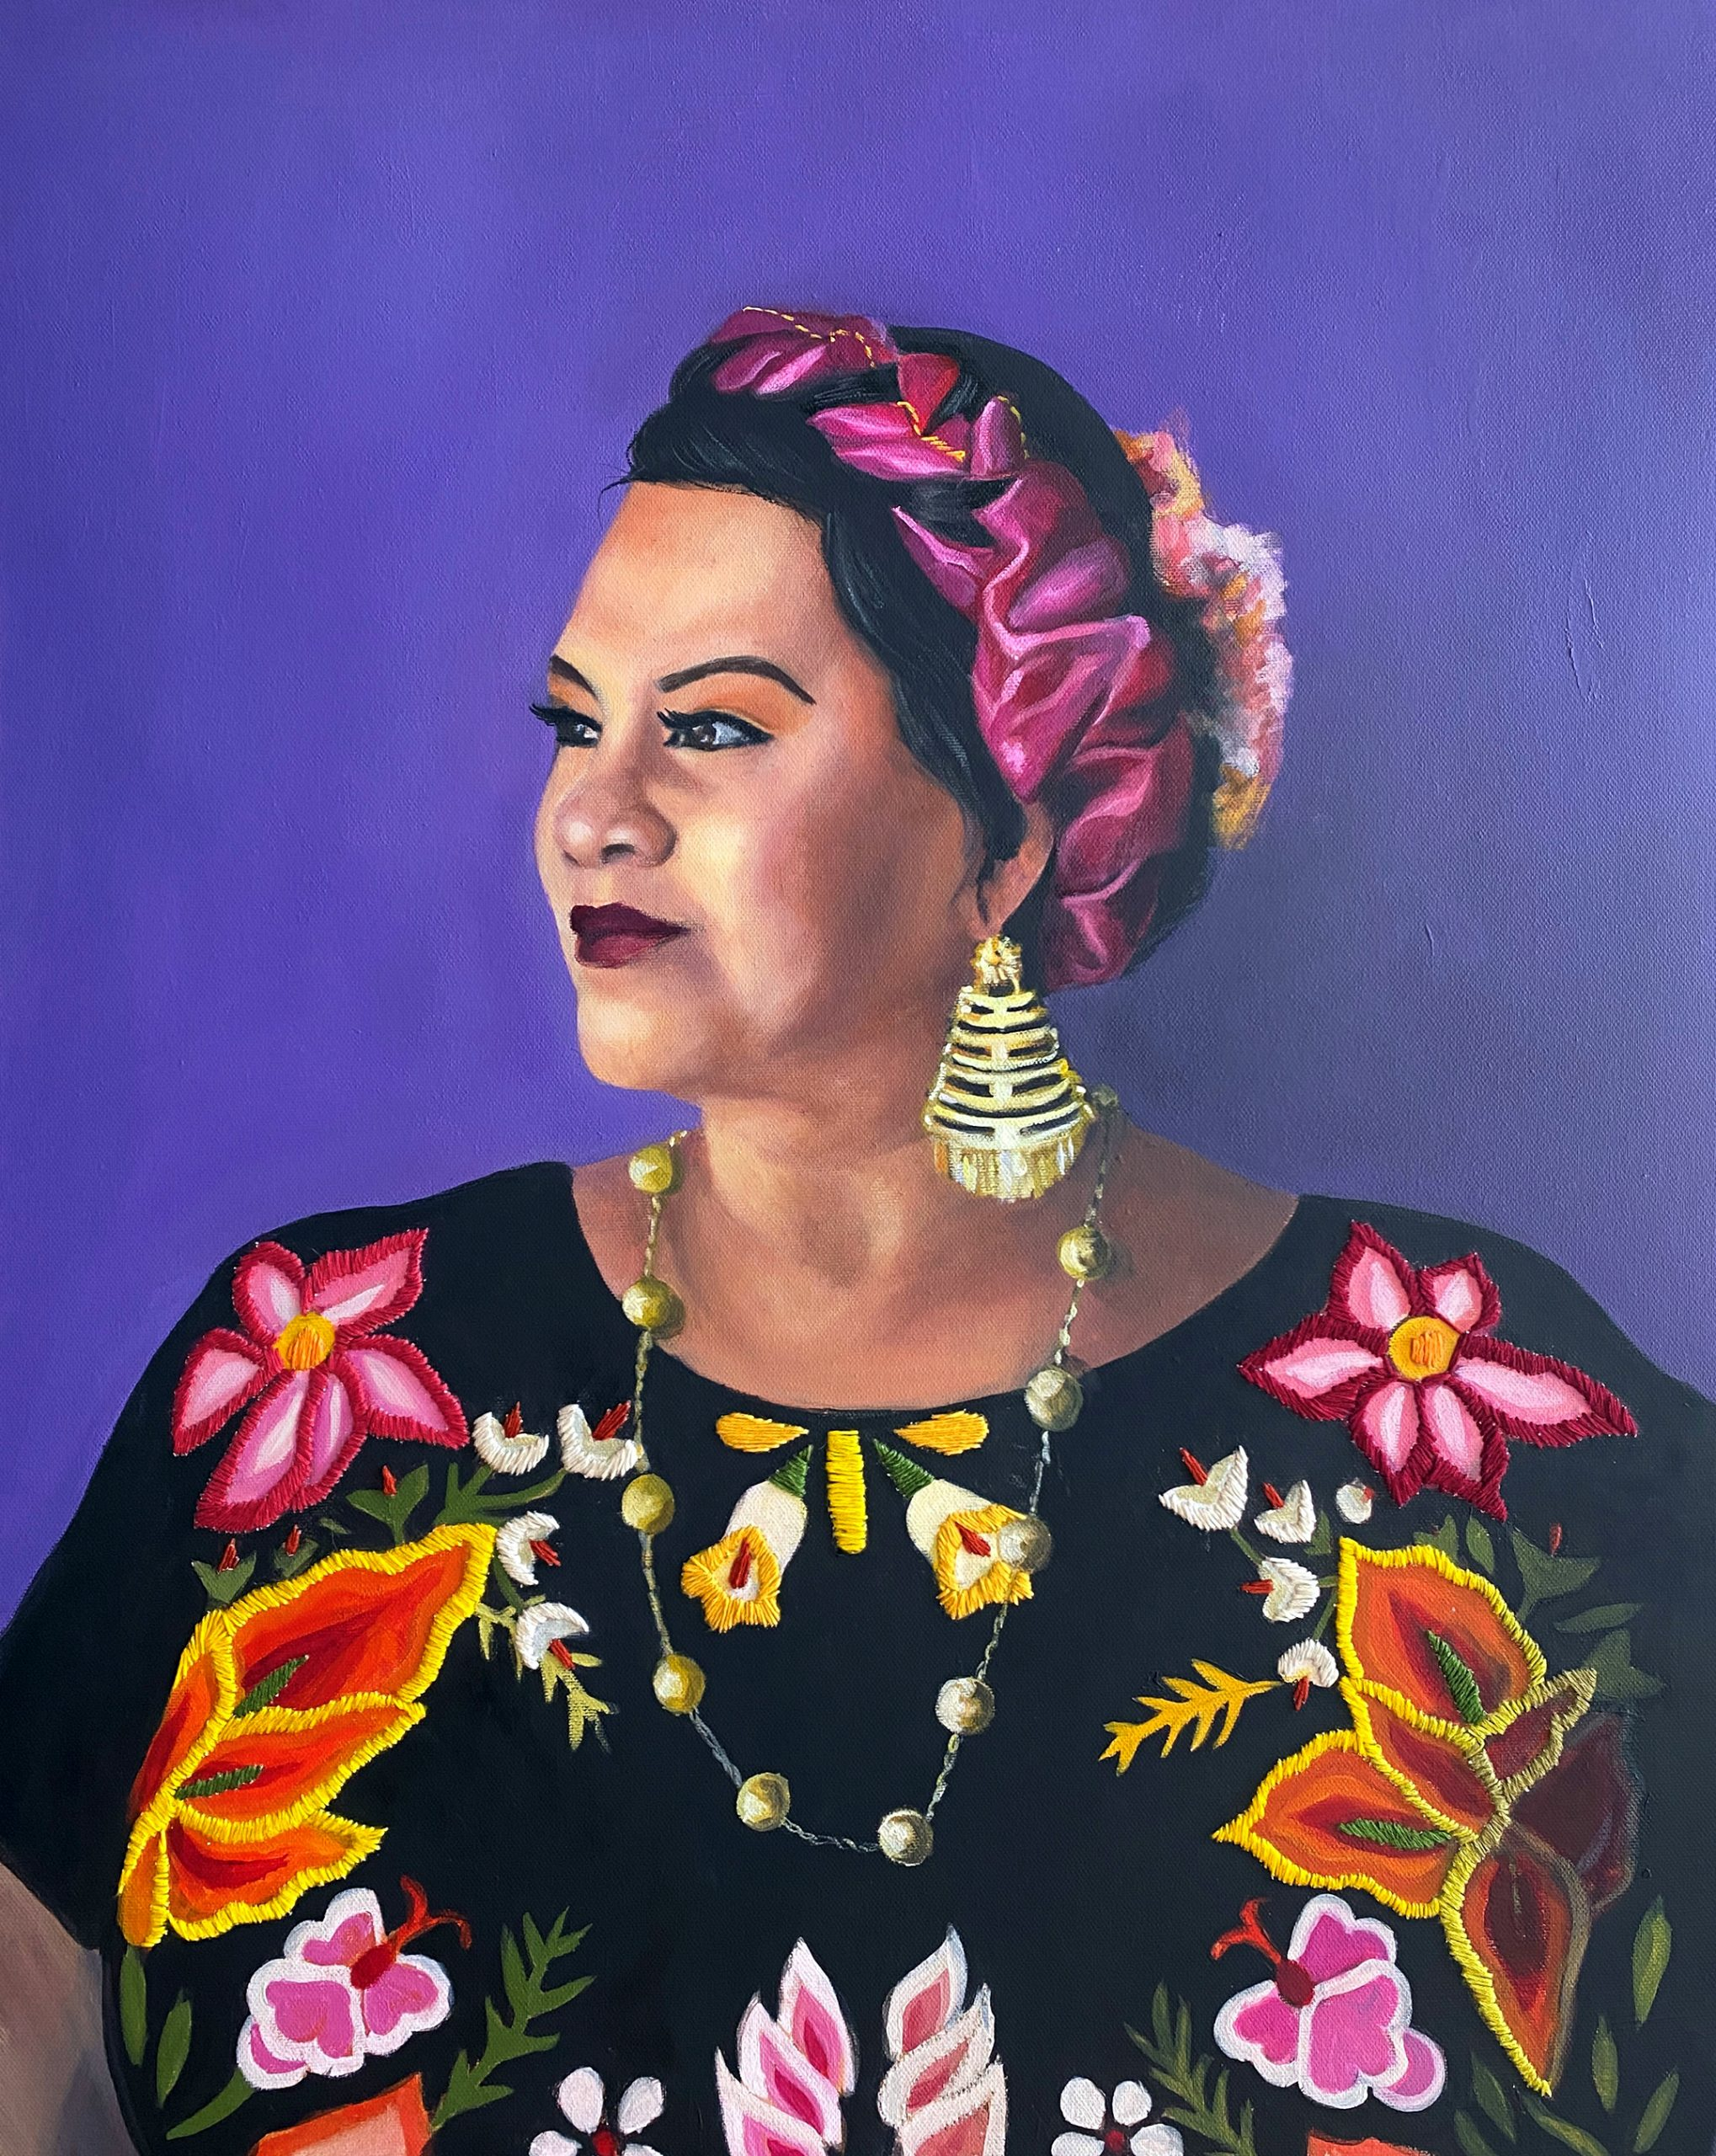 Mexican woman on a purple background